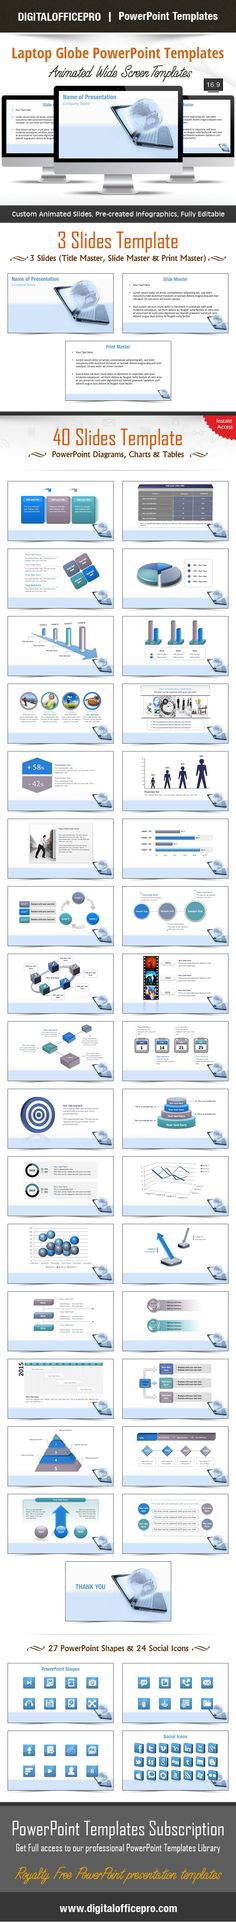 Powerpoint templates pyramids powerpoint diagrams charts powerpoint templates pyramids powerpoint diagrams charts pinterest powerpoint presentation templates and presentation templates toneelgroepblik Image collections